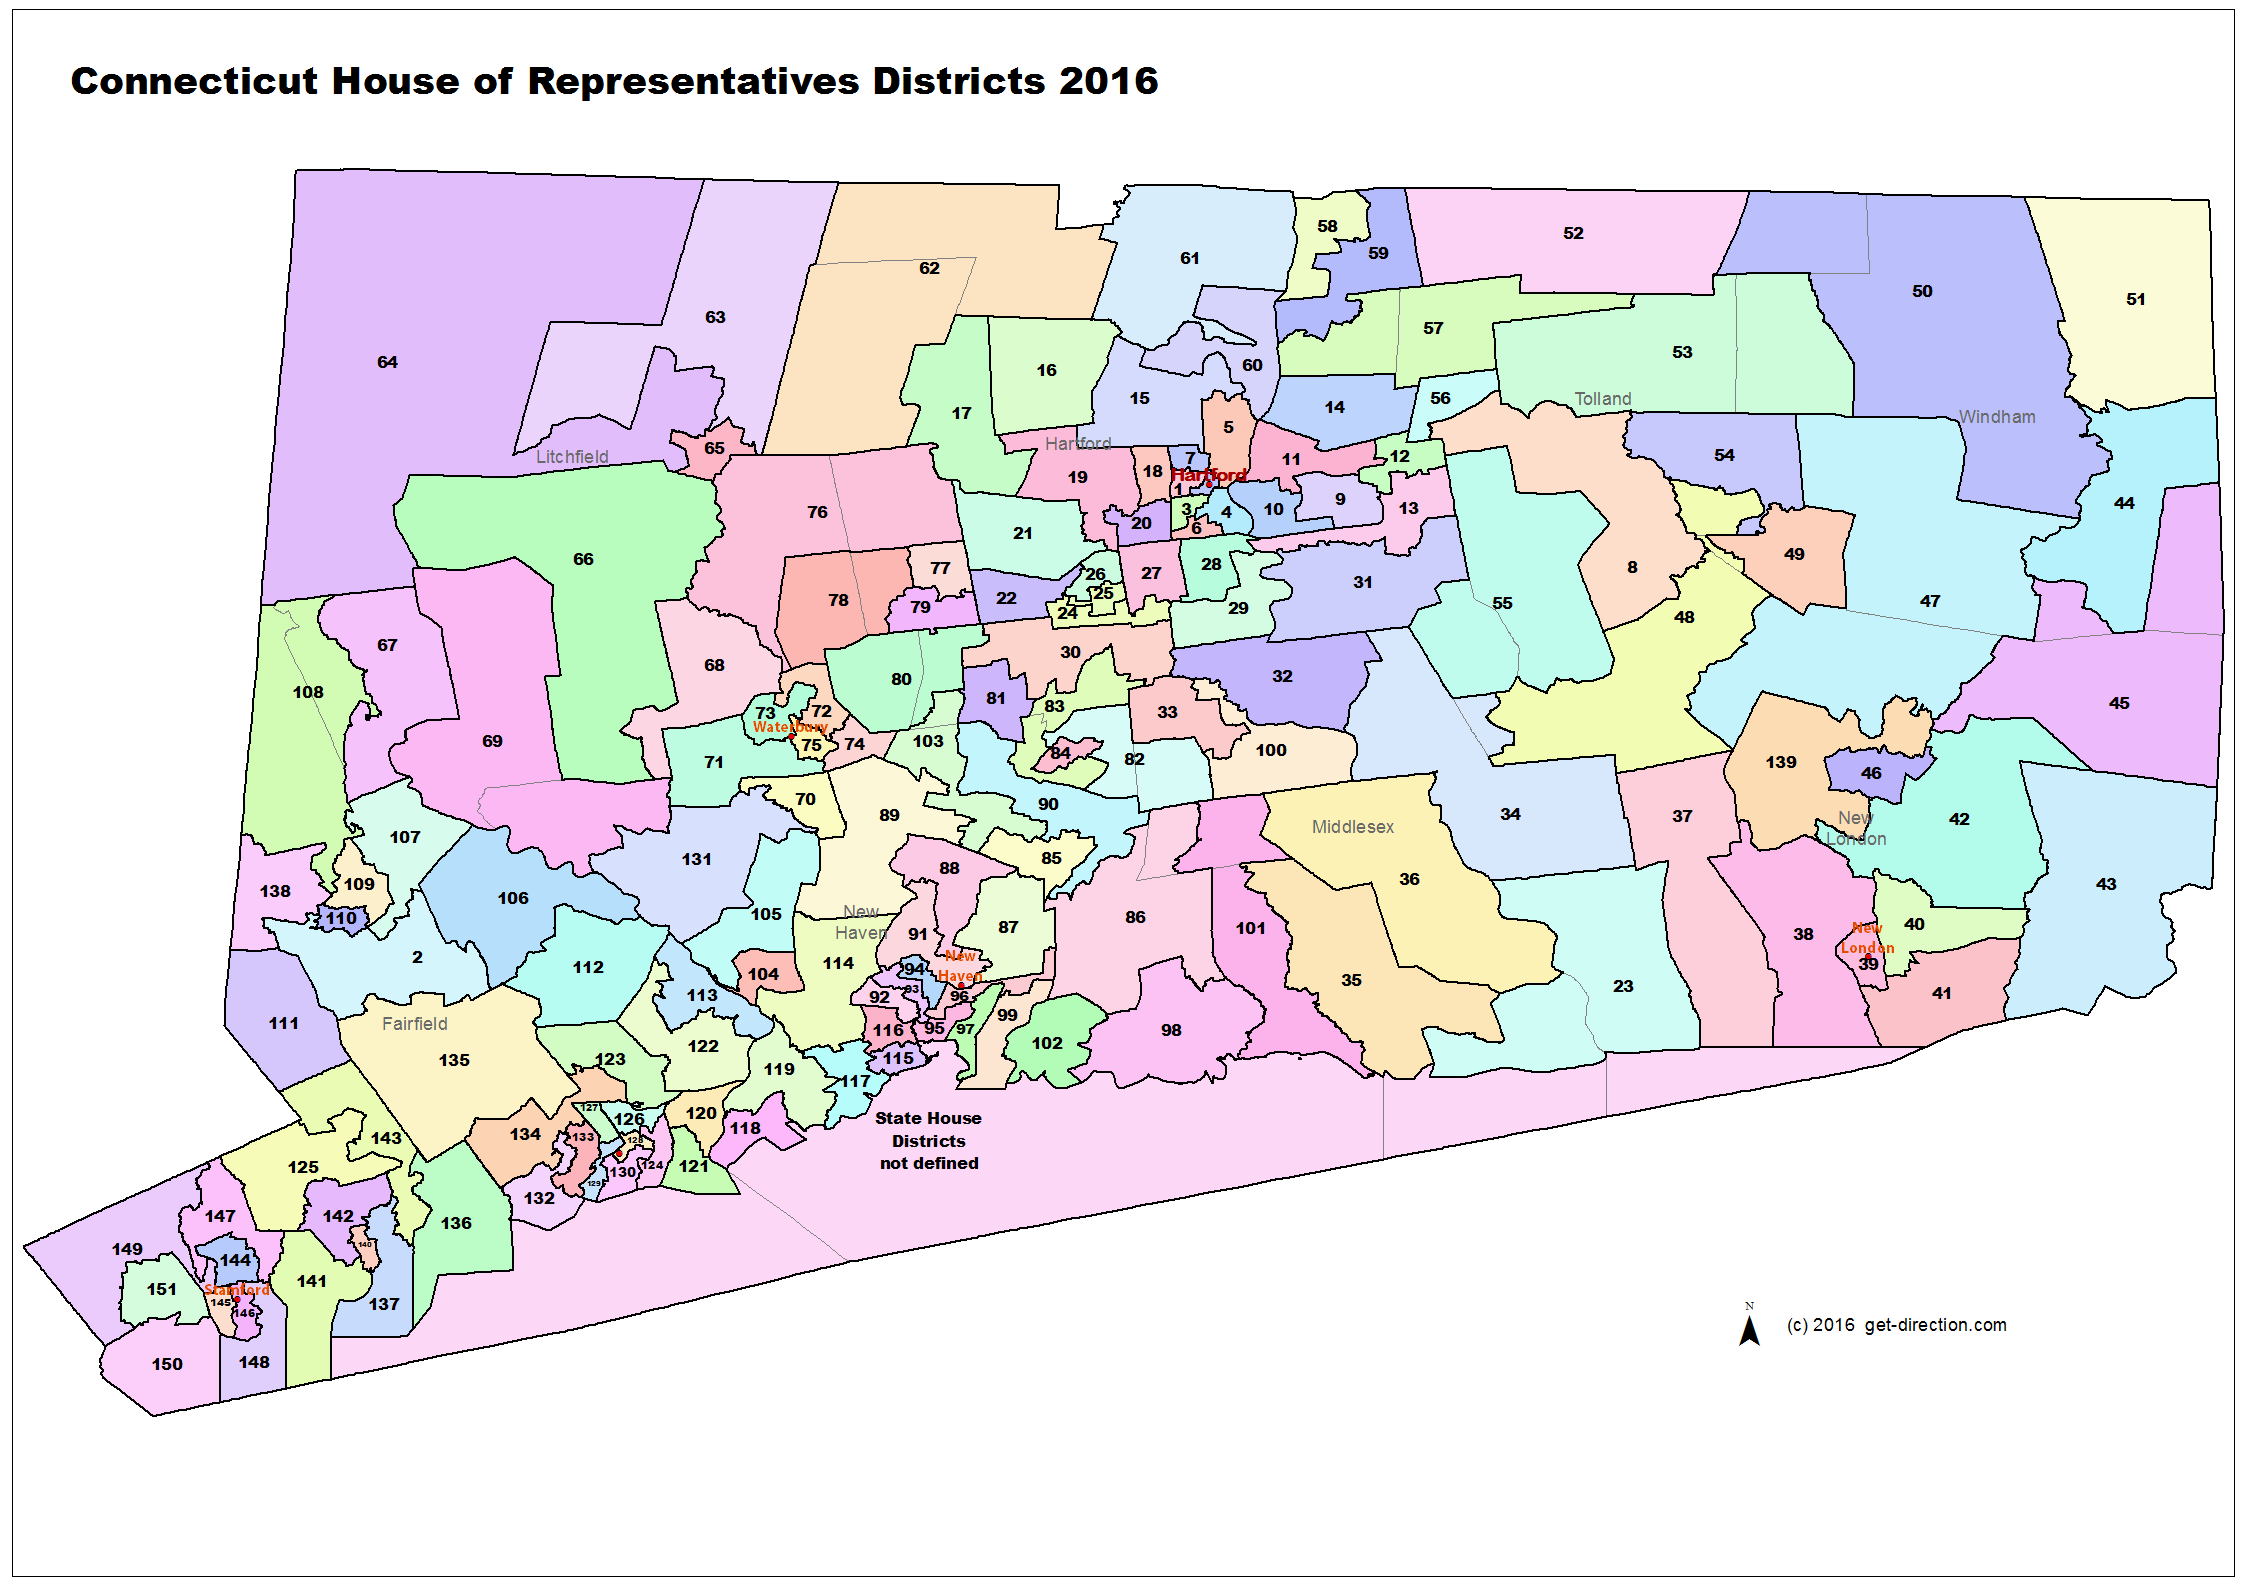 connecticut-house-of-representatives-districts-2016.png